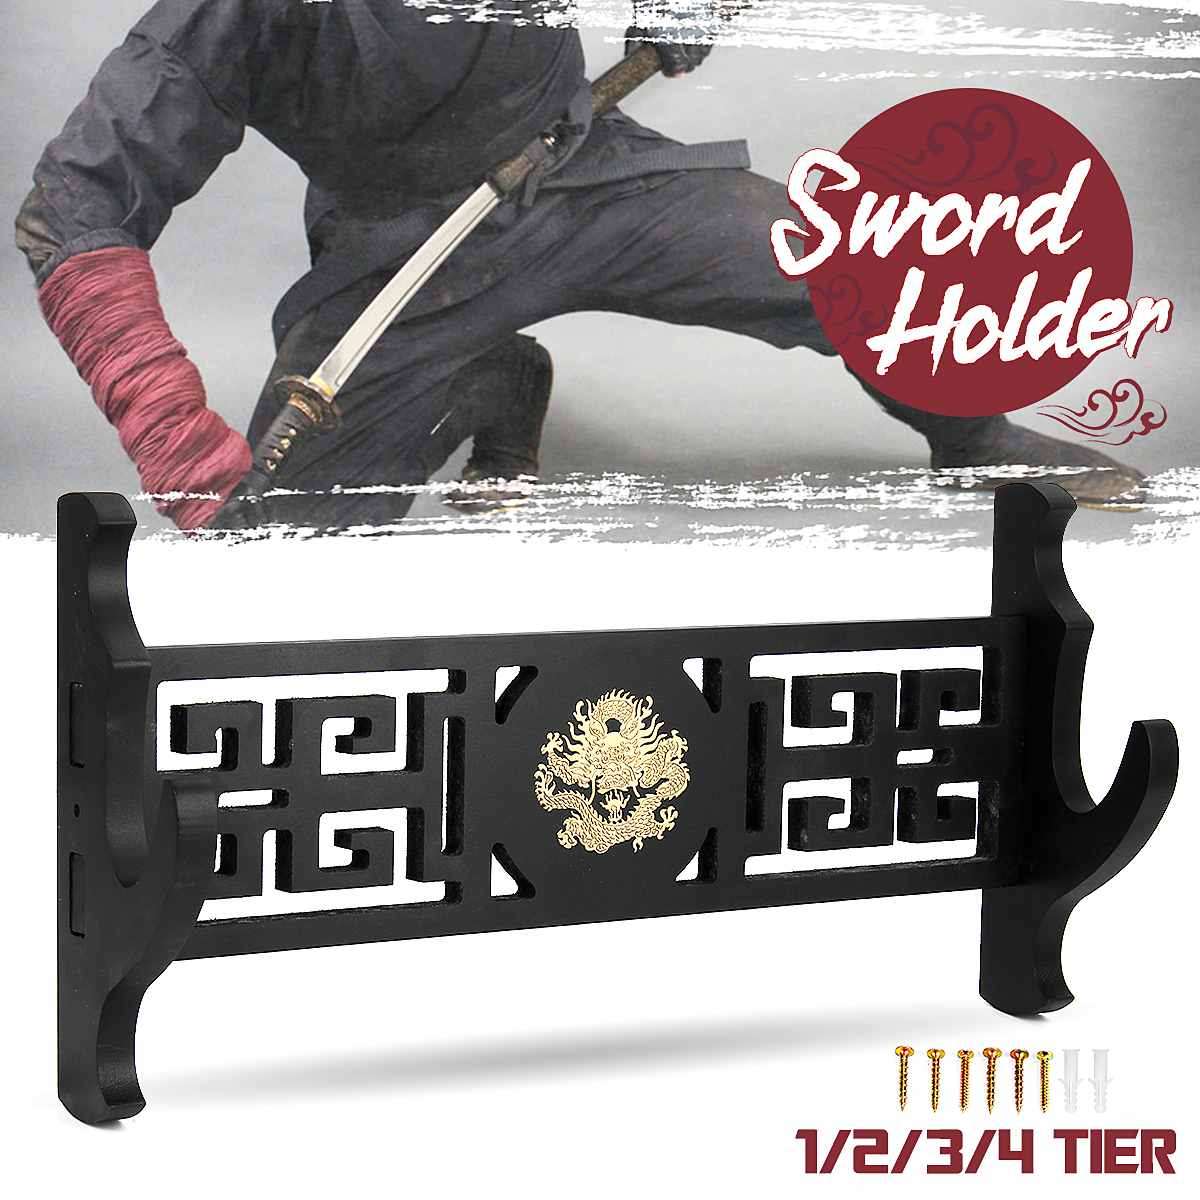 1/2/3 /4 Layer Samurai Sword Holder Wall Mount Dragon Japanese Samurai Sword Katana Holder Stand Hanger Bracket Rack Display